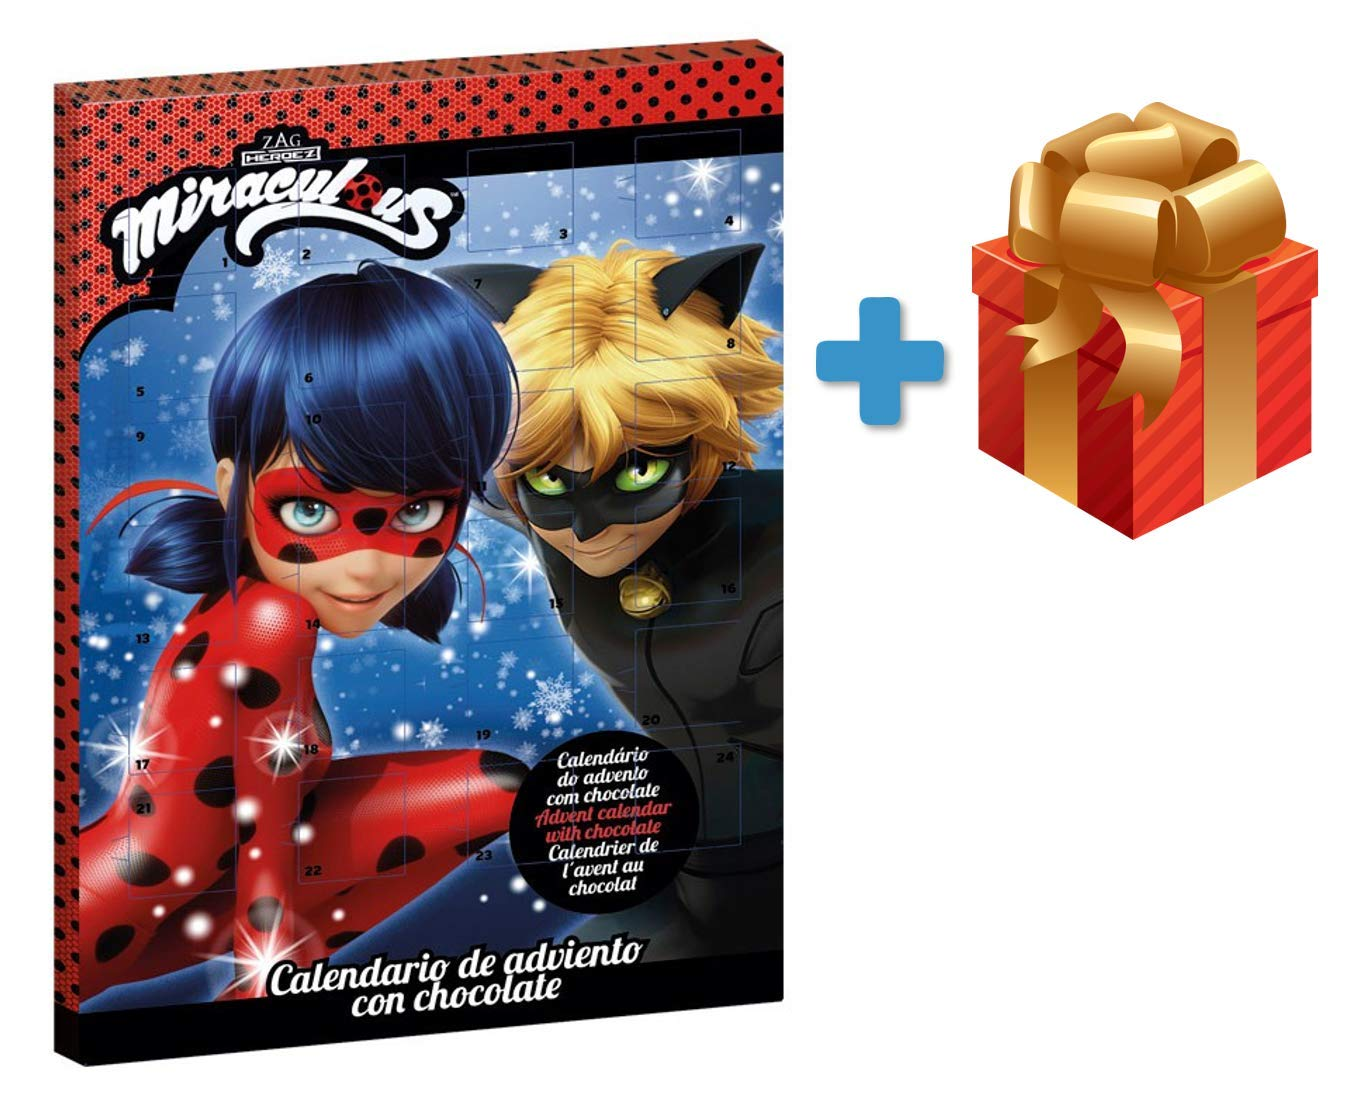 Miraculous: Tales of Ladybug & Cat Noir Milk Chocolate Advent Calendar 2018 + Surprise Gift (Order Before November 23TH for Express DELIVERY) ZAG